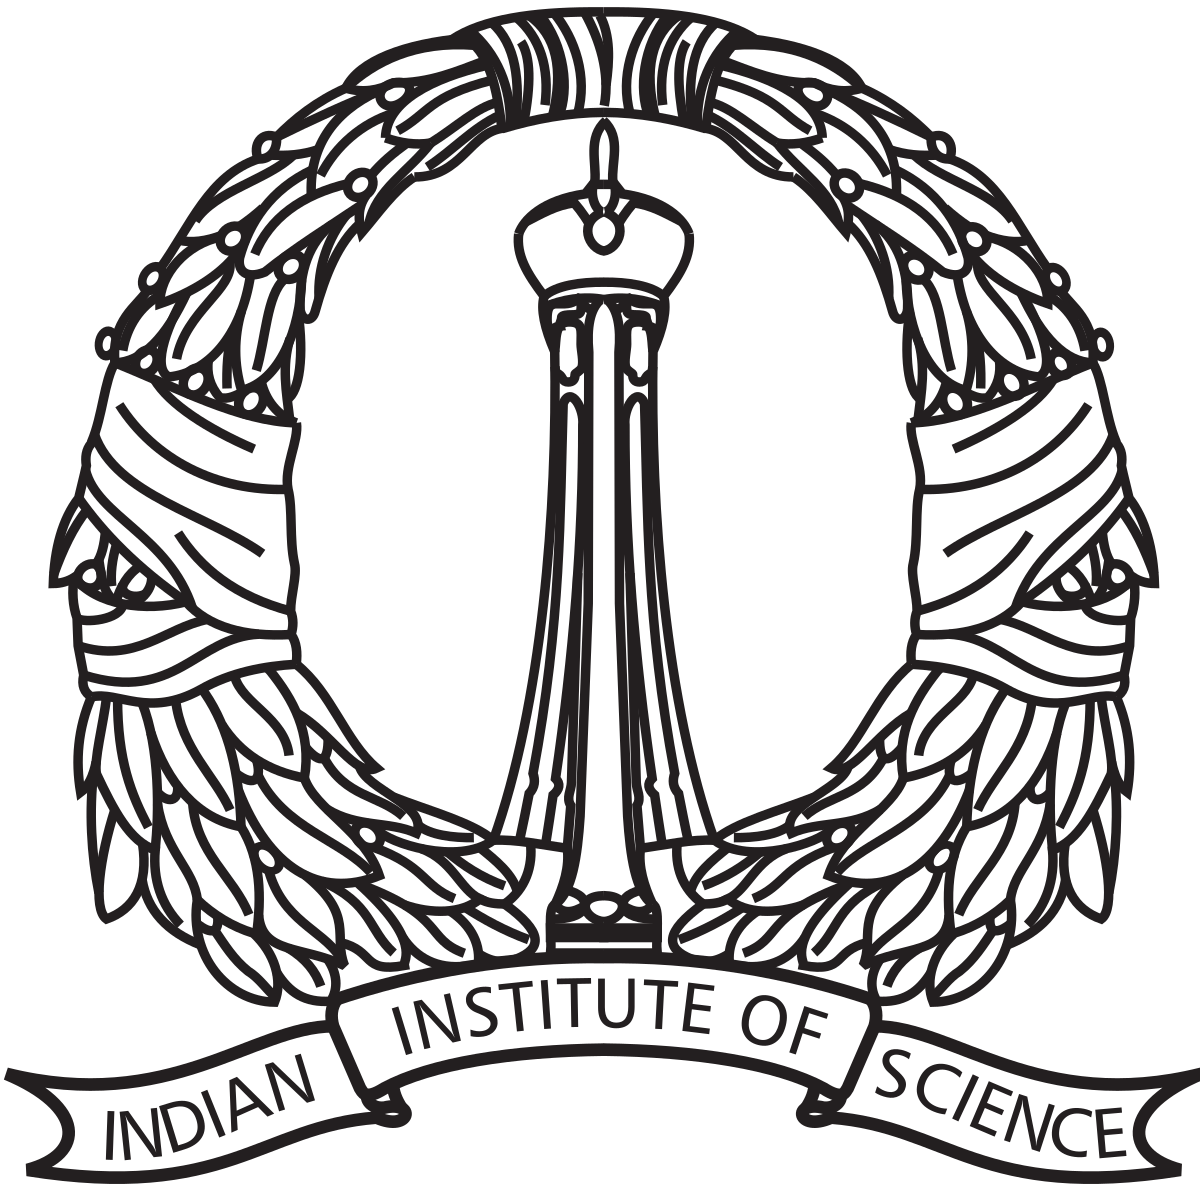 Course on Valuation of Ecosystem Goods & Services at IISc, Bangalore [Jan 1-15]: Register by Nov 20